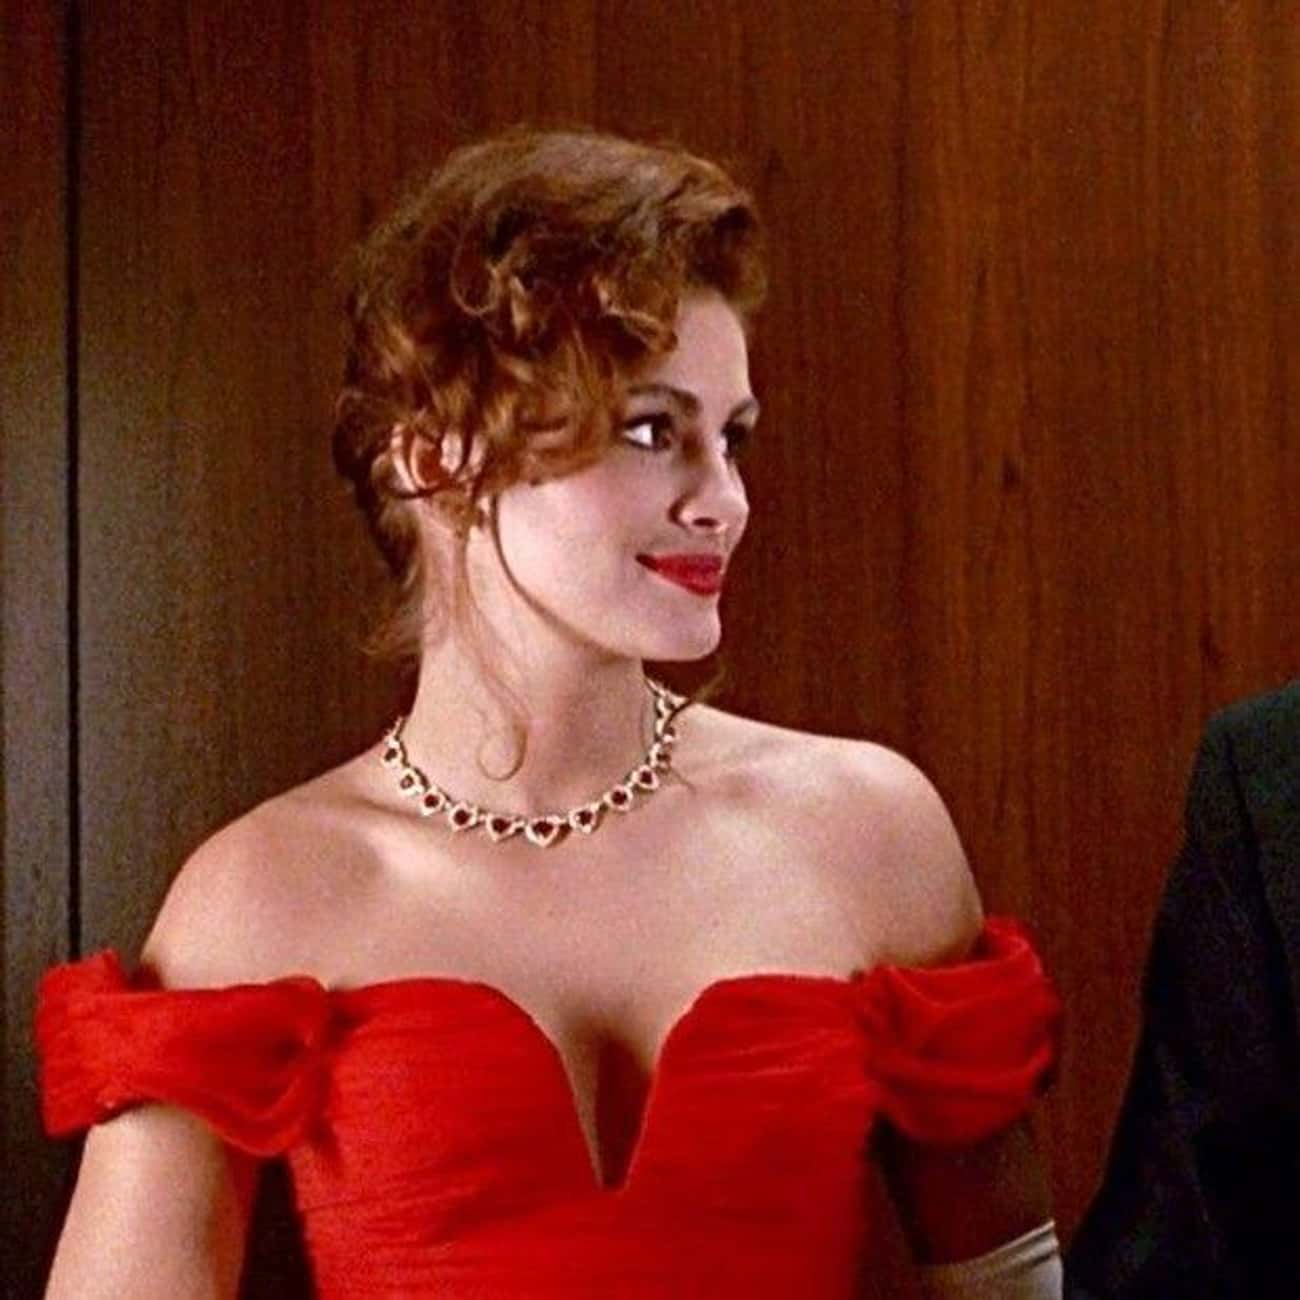 I Had A Good Time is listed (or ranked) 2 on the list The Best 'Pretty Woman' Quotes